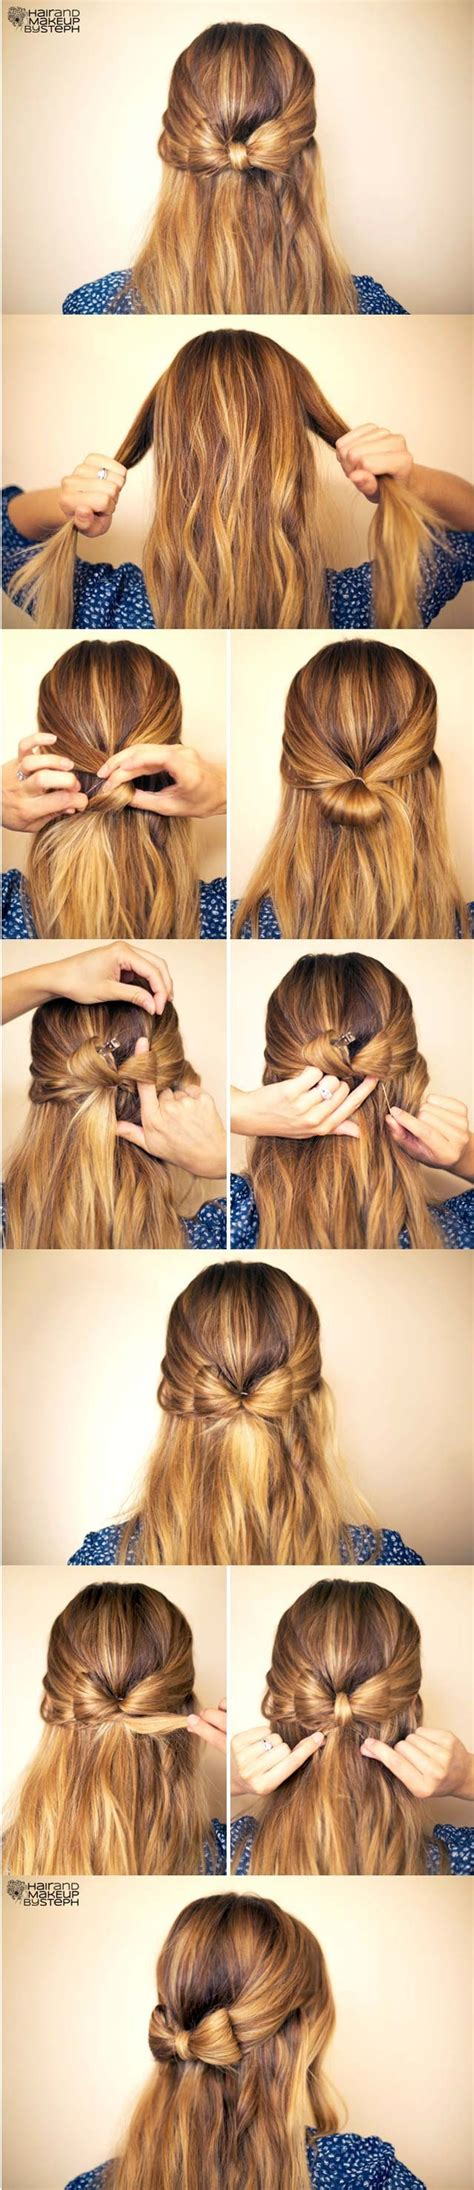 cute hairstyles and how to do it 19 pretty long hairstyles with tutorials pretty designs